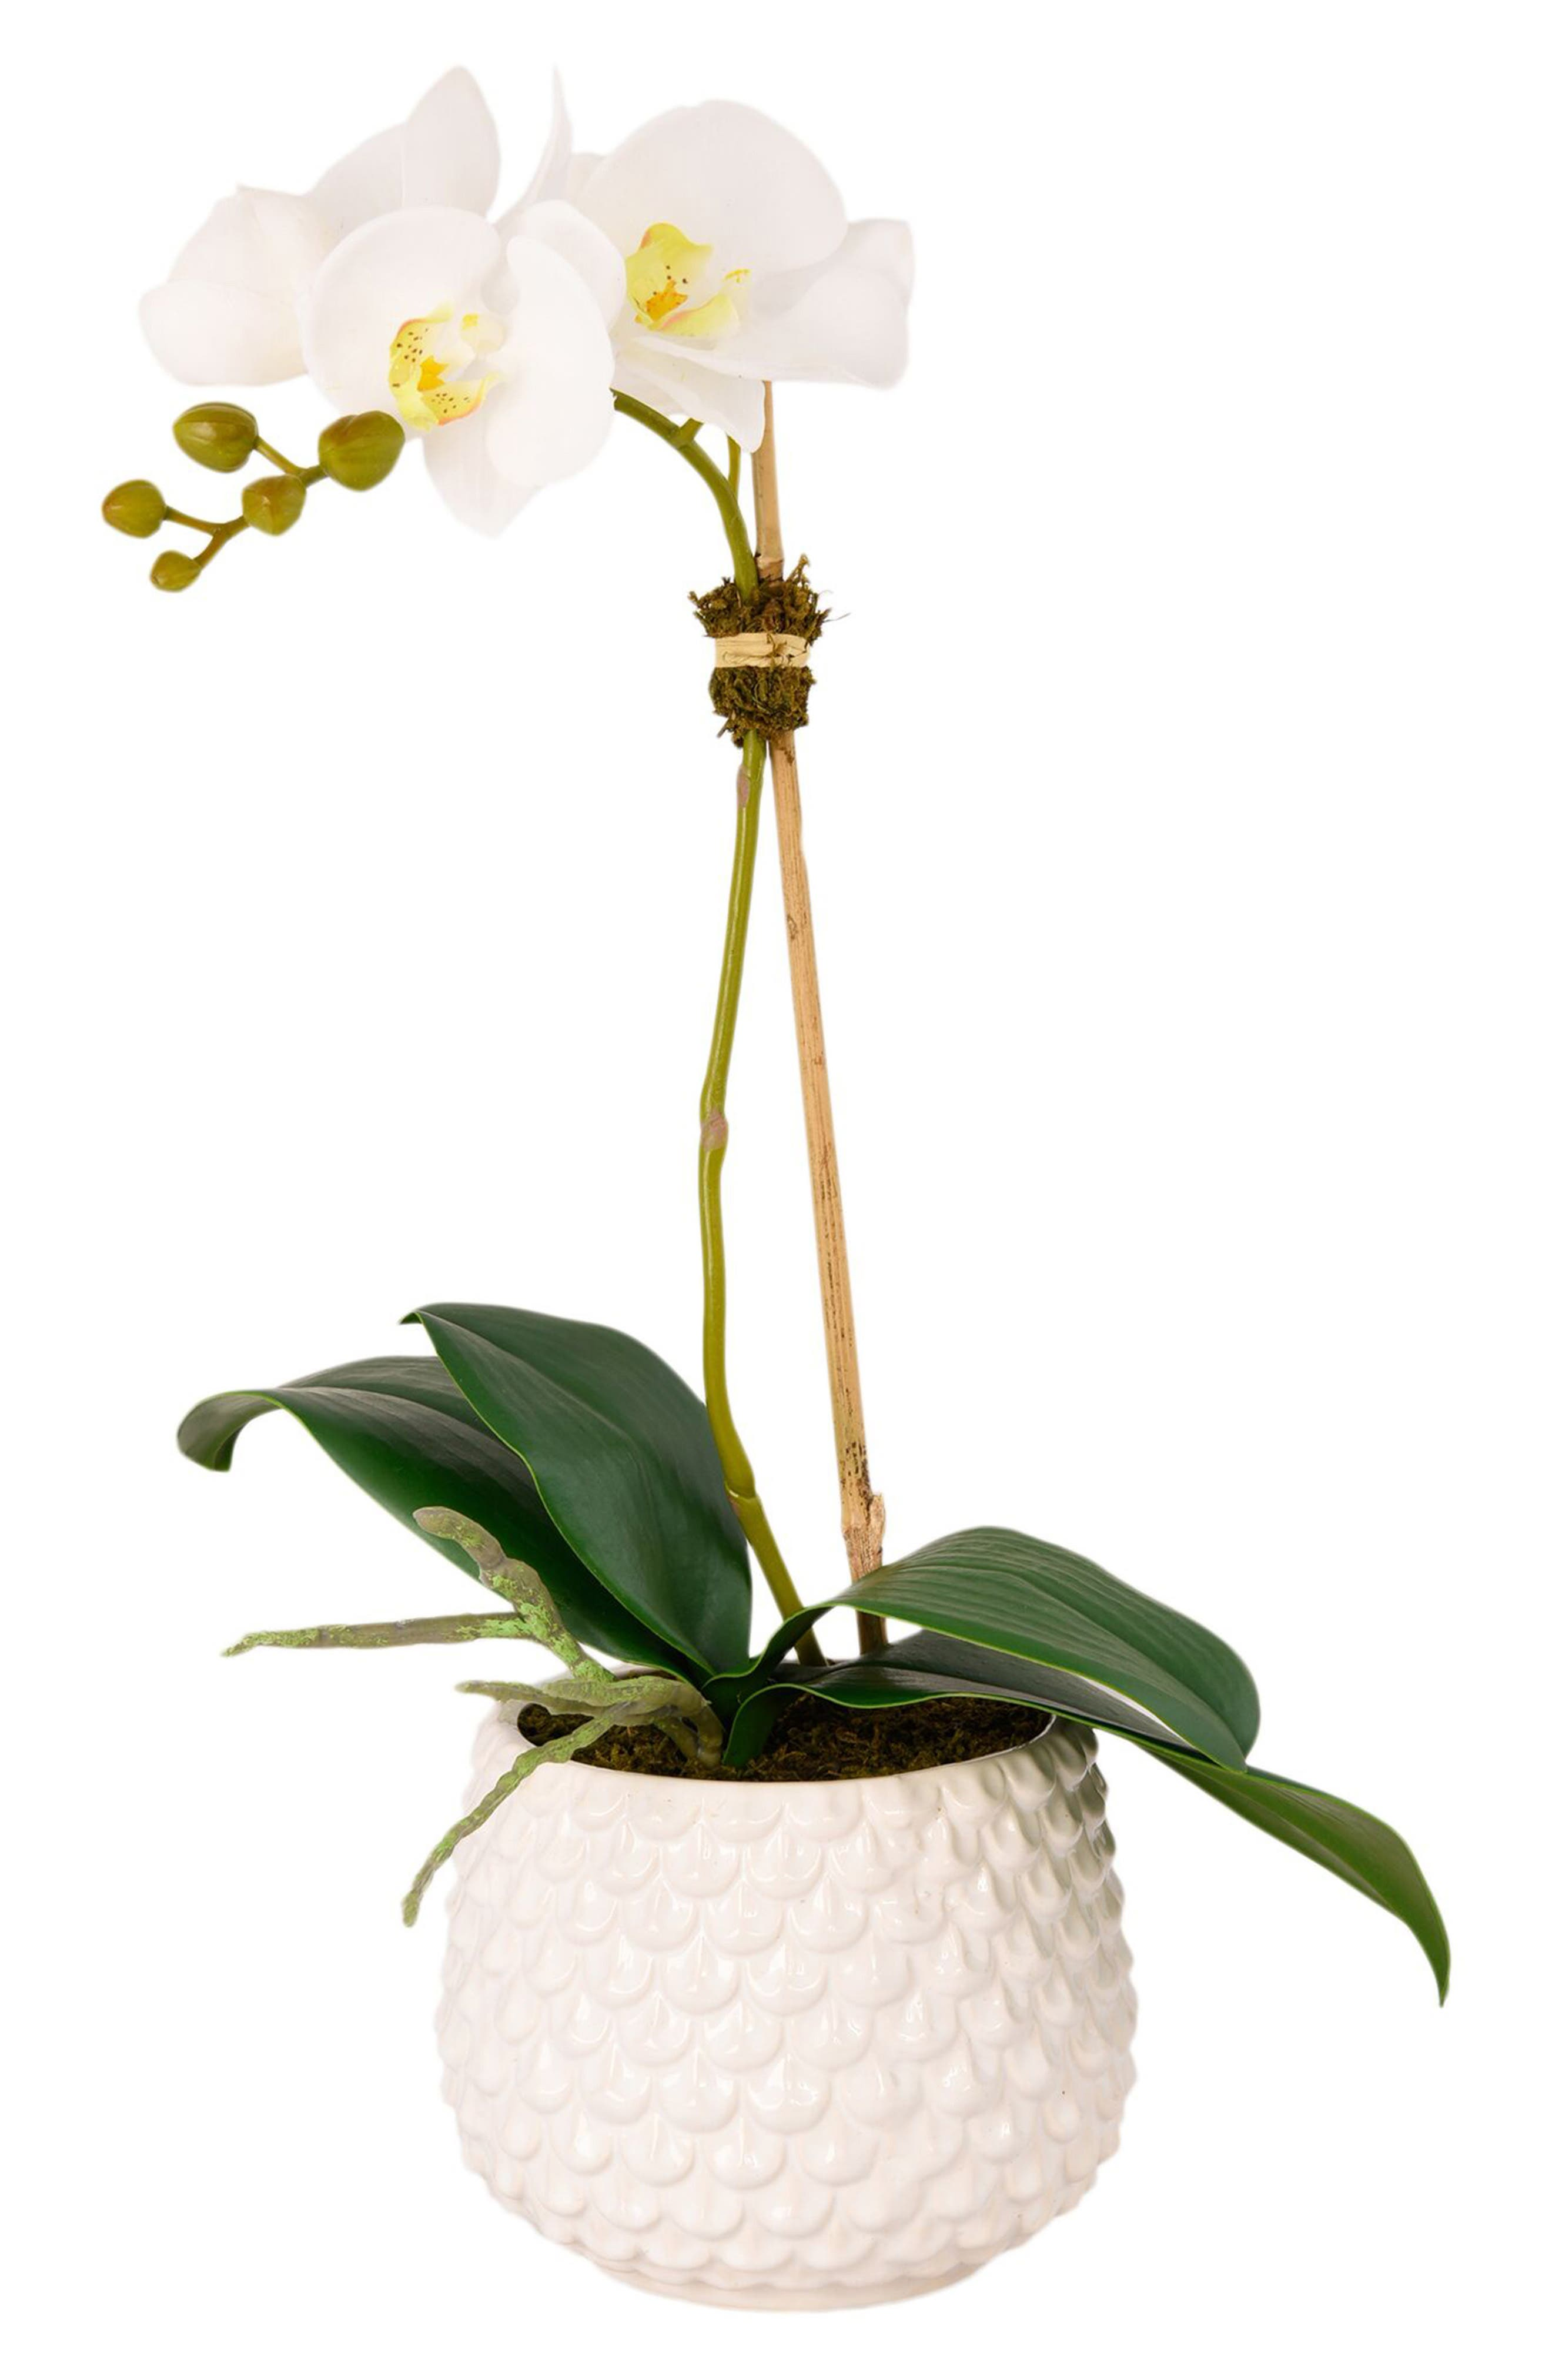 No need for a green thumb when you\\\'ve got this charming faux-orchid planter designed by real florists to add a touch of wintry elegance to any decor. Style Name: Bloomr Pearl Orchid Planter Decoration. Style Number: 5820997. Available in stores.